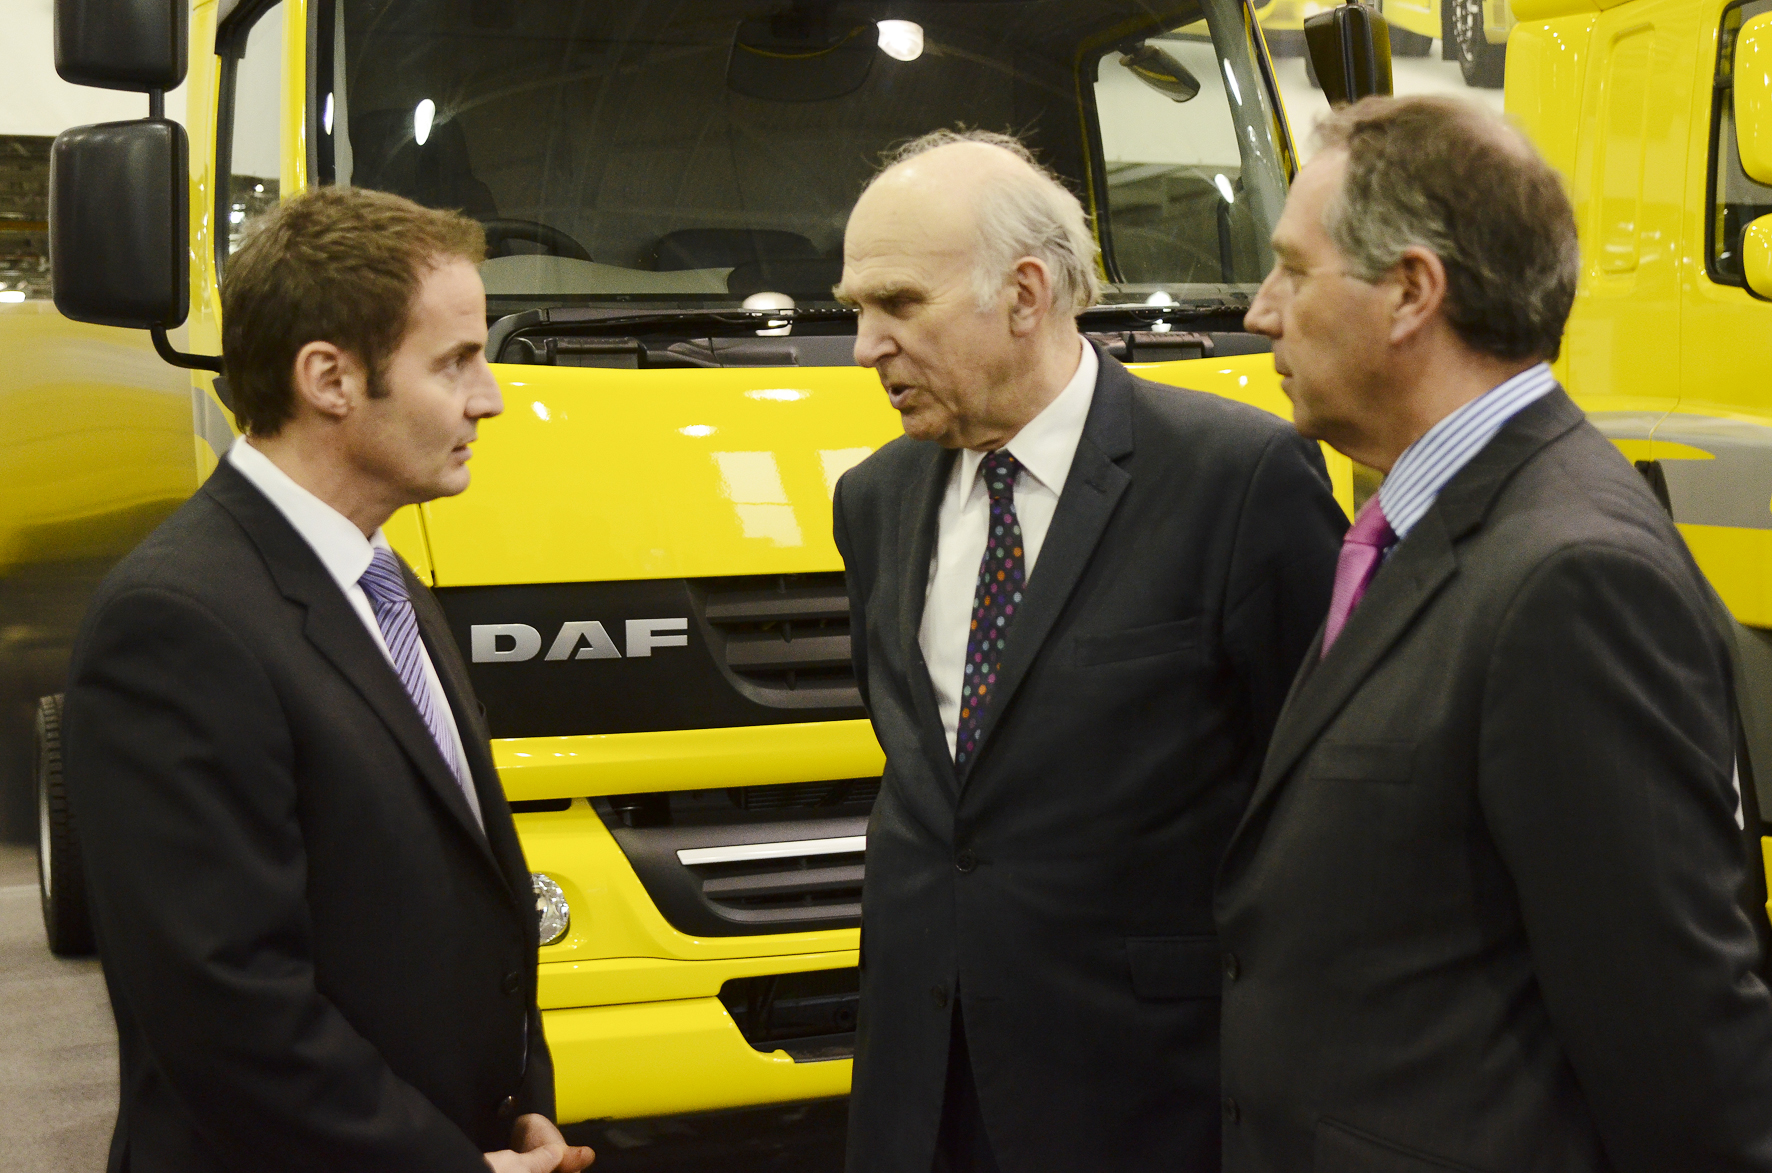 14.1.13 Leyland Trucks l-r Ron Augustyn, md Leyland Trucks; Vince Cable, Business Secretary; Ray Ashworth, md DAF Trucks UK